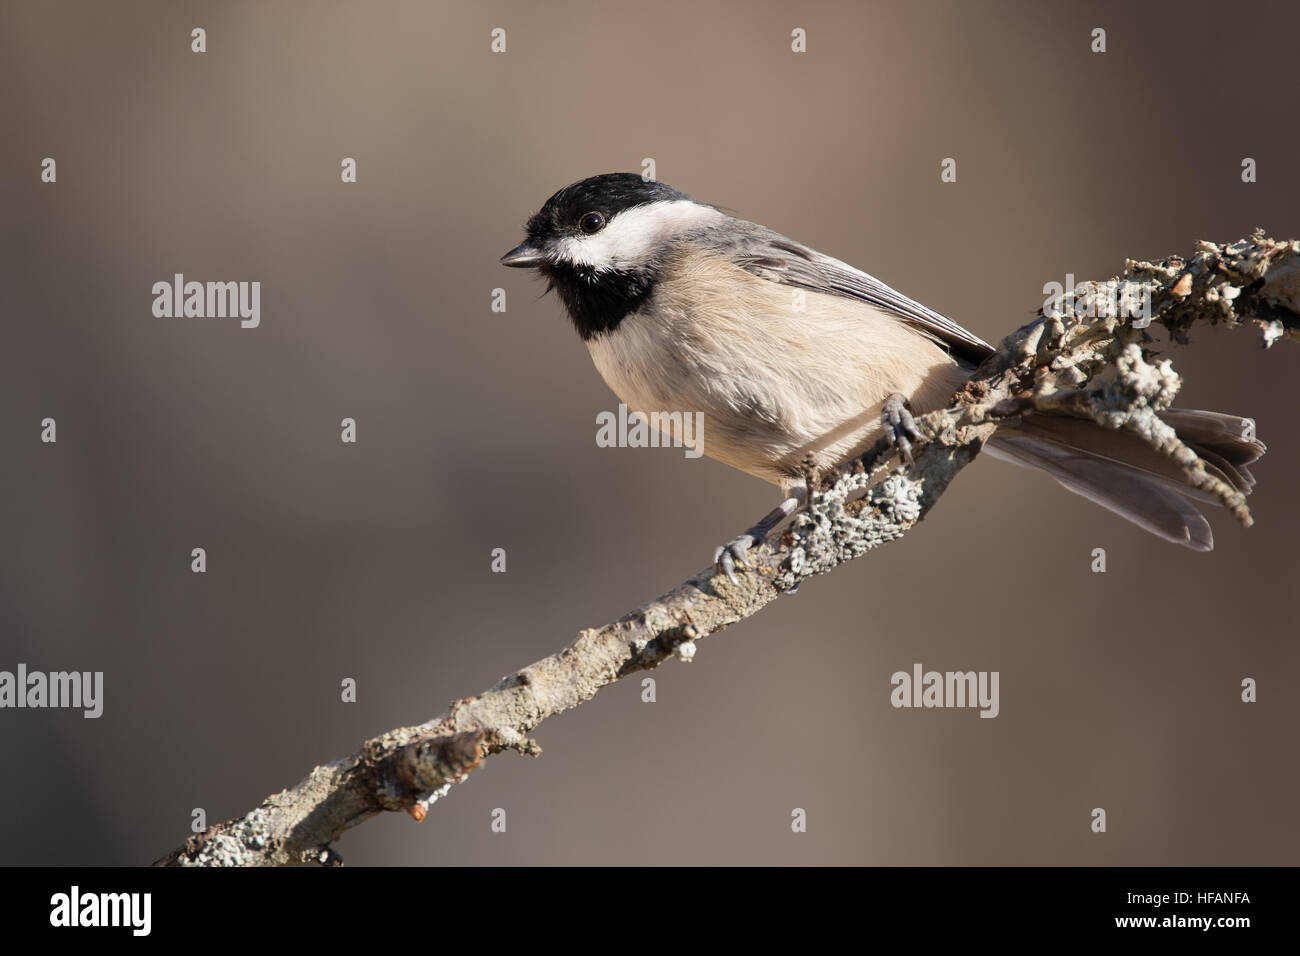 A Carolina chickadee perched on a branch. - Stock Image